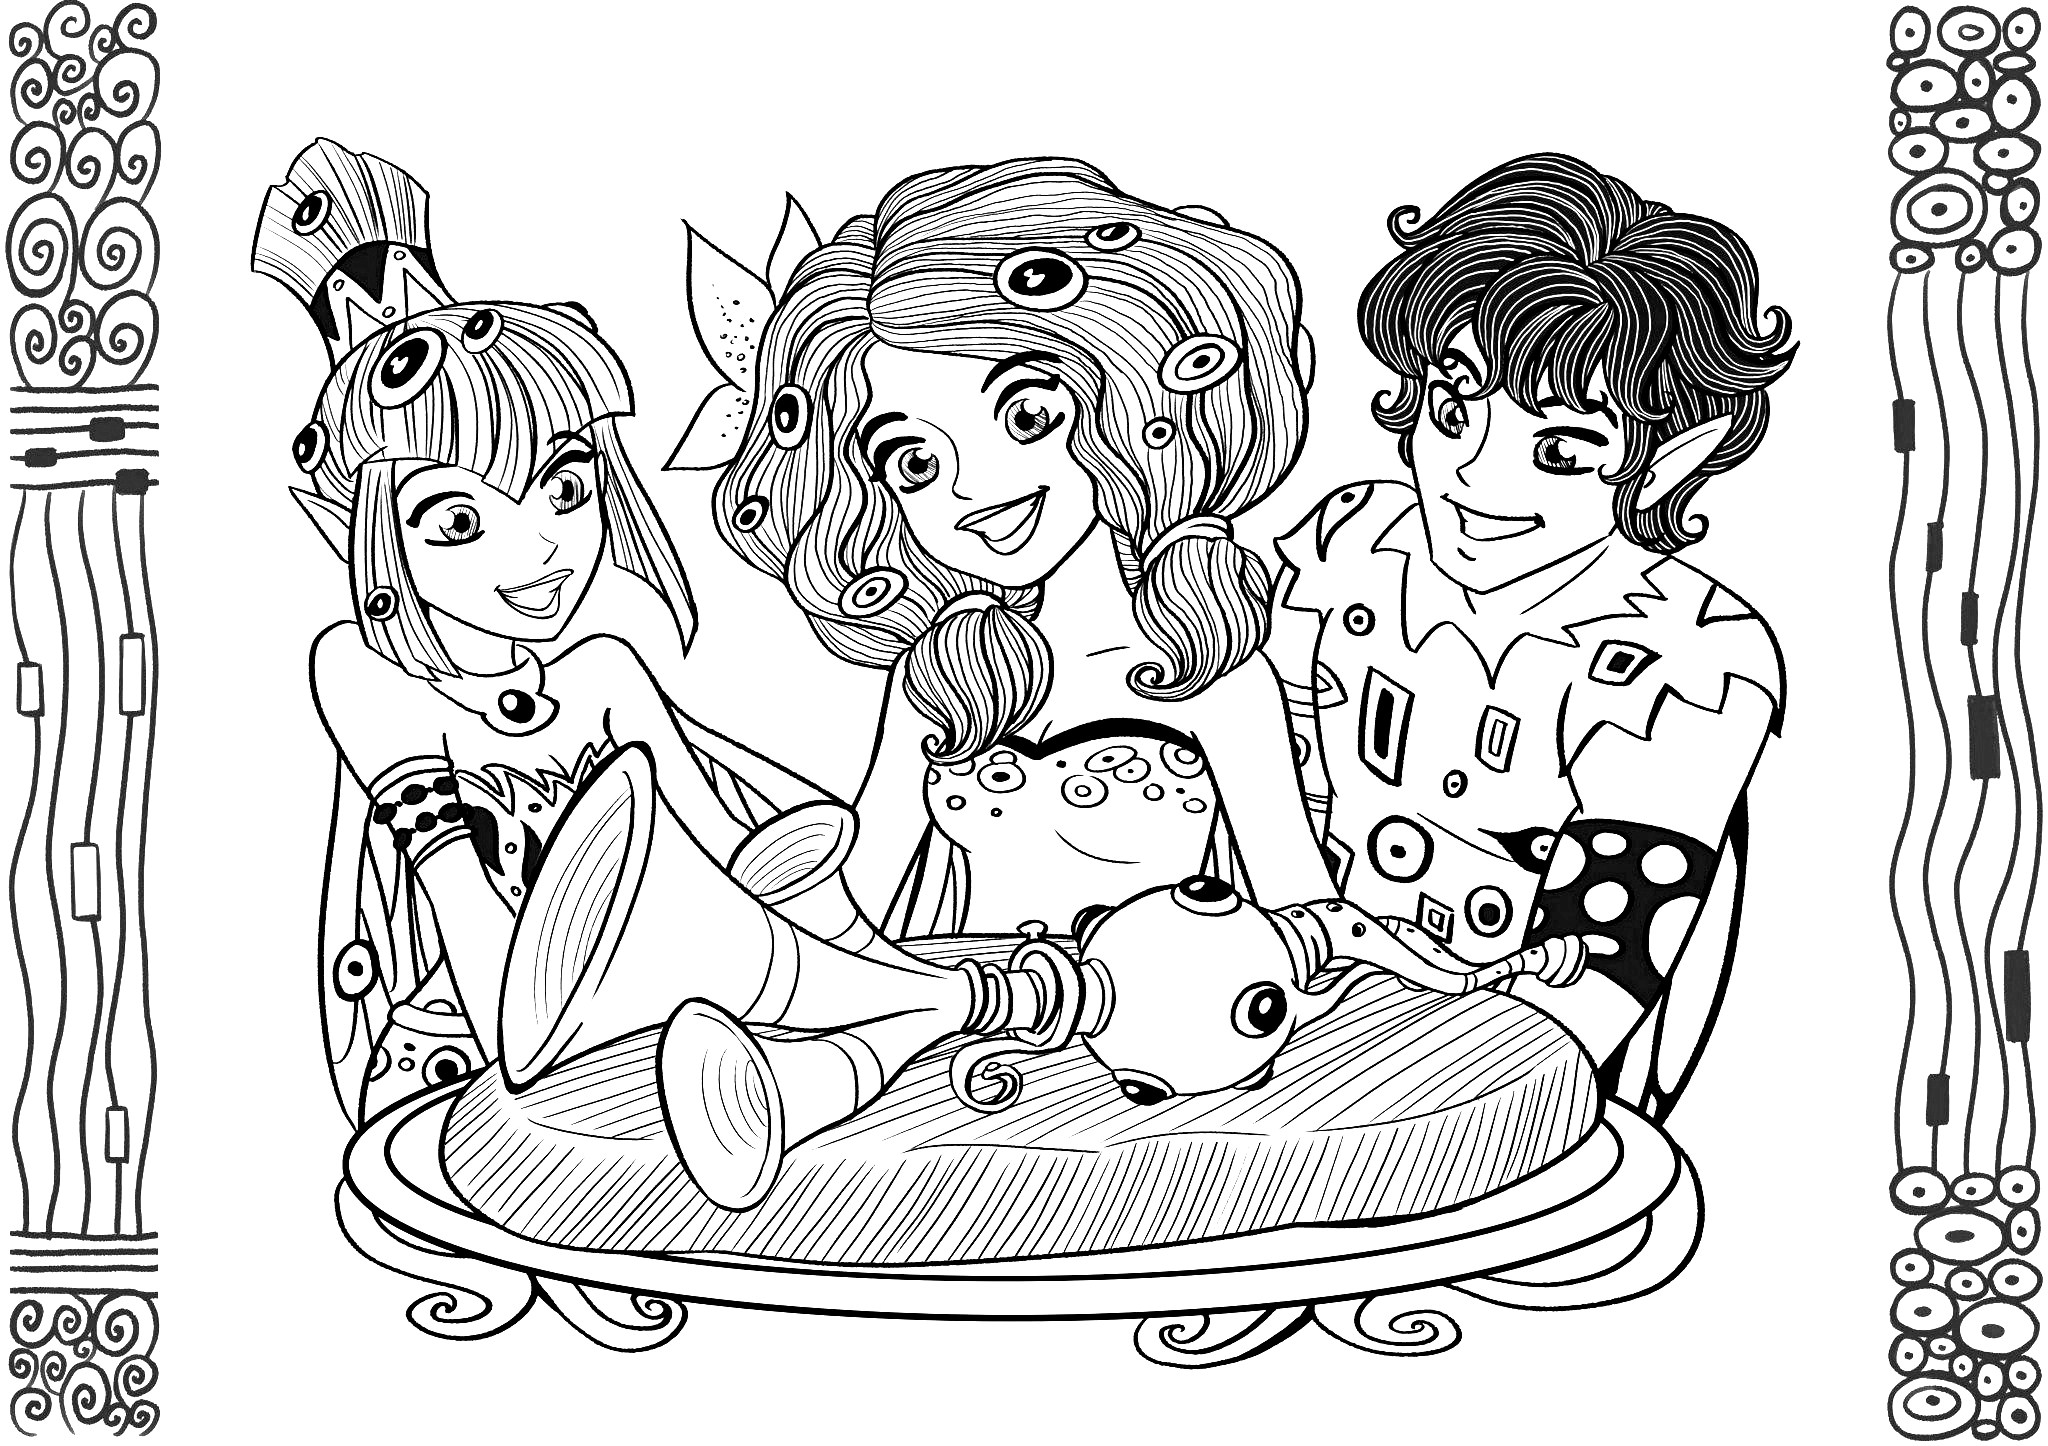 Free Mia And Me coloring page to download, for children